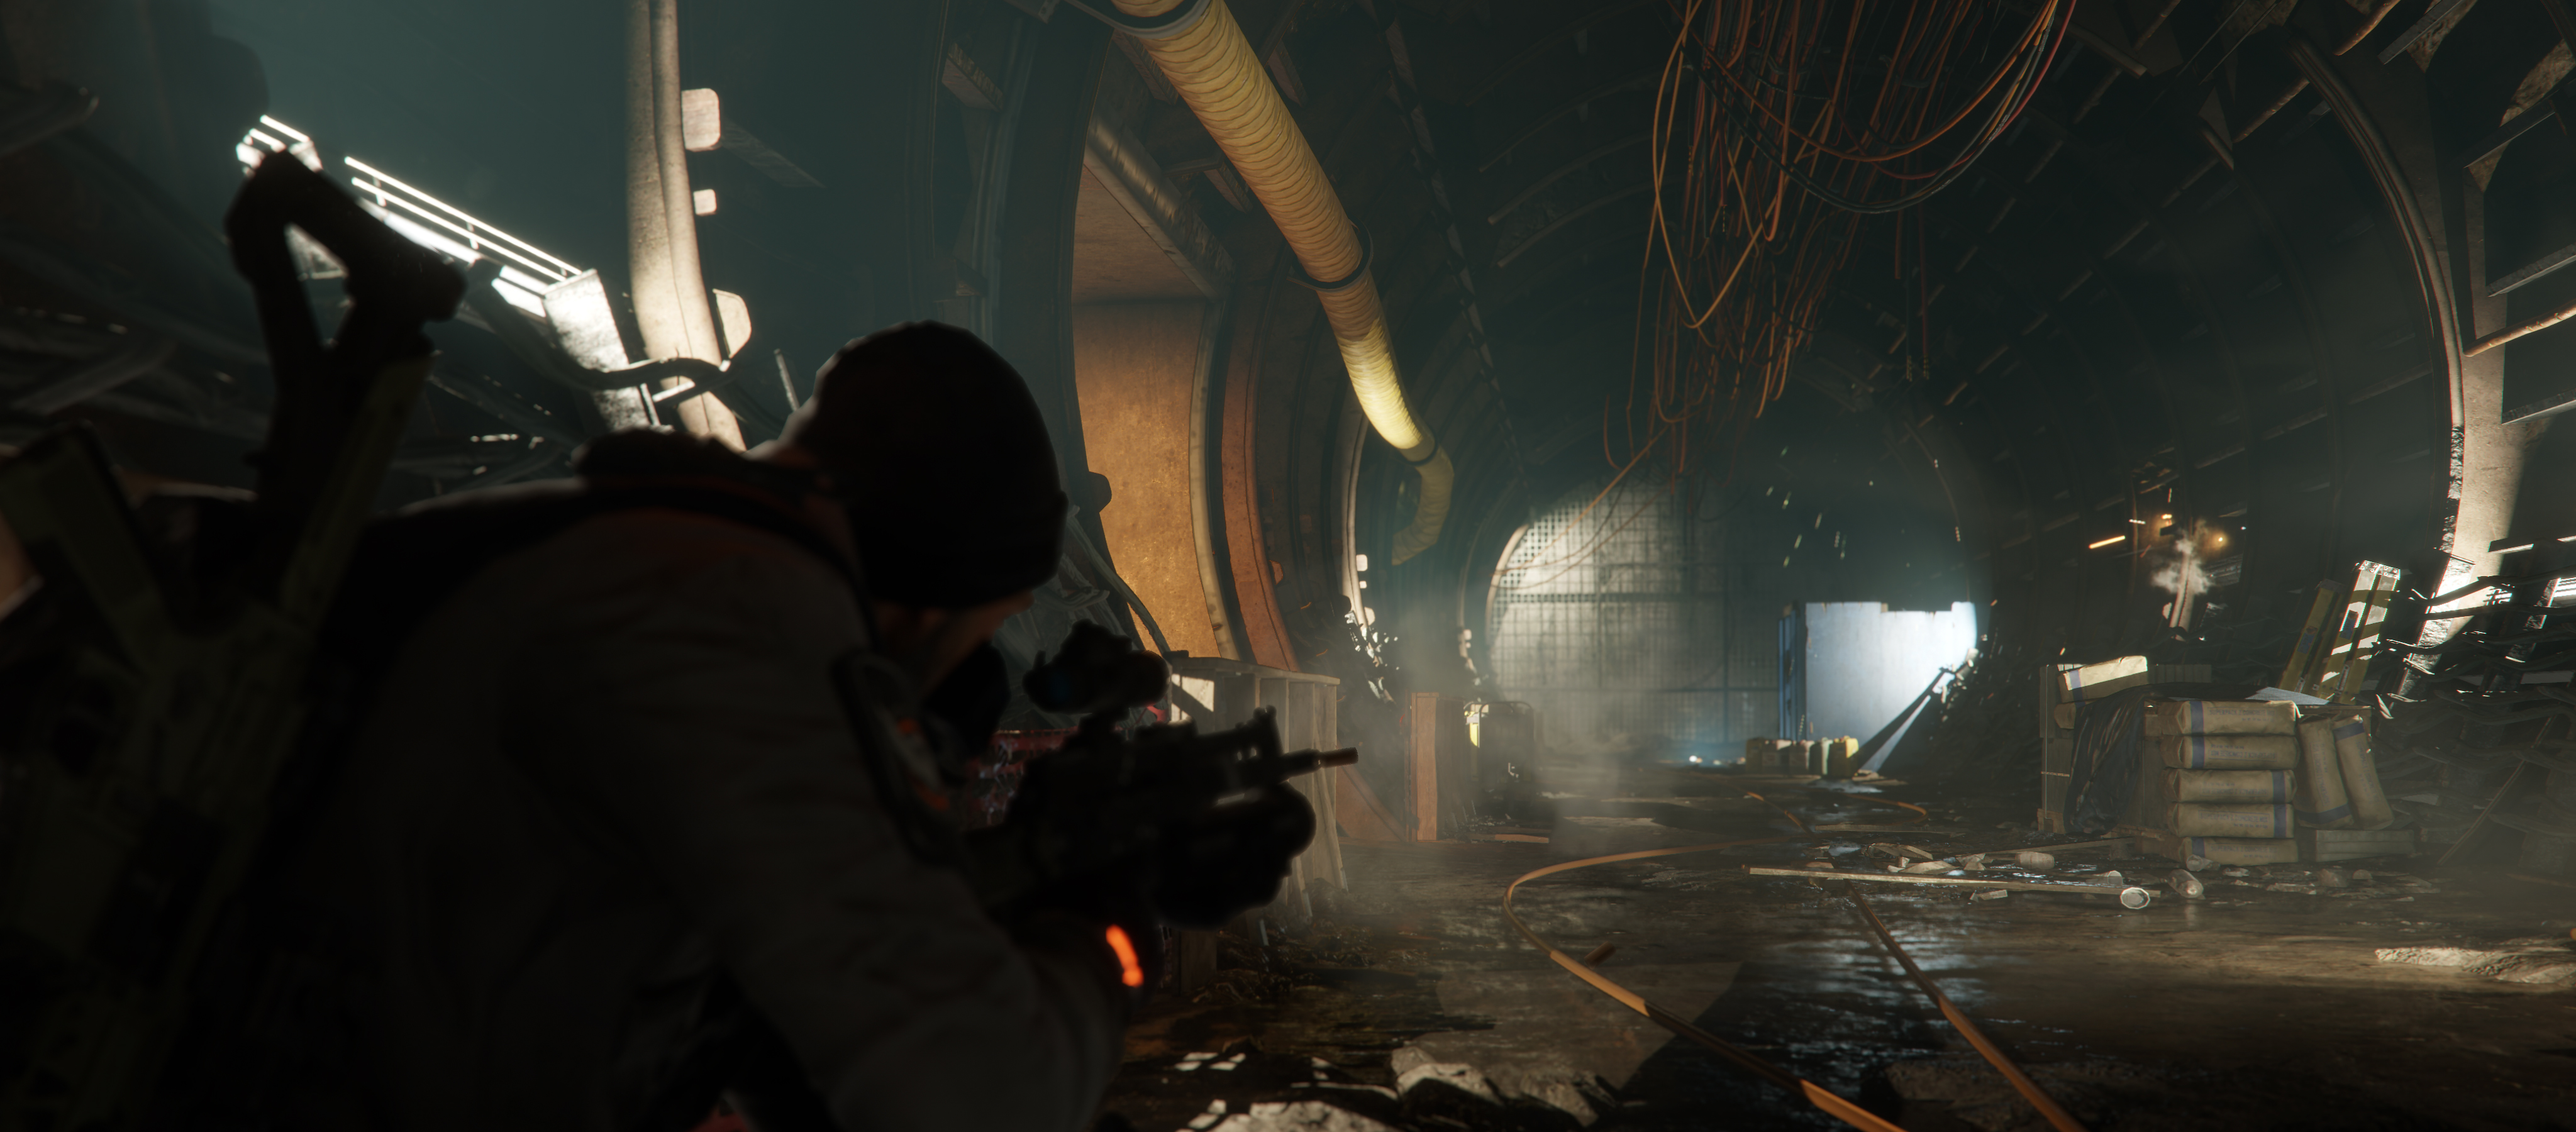 https://ubistatic9-a.akamaihd.net/resource/en-US/game/tomclancy-thedivision/game/ContaminationEvent_282233.jpg